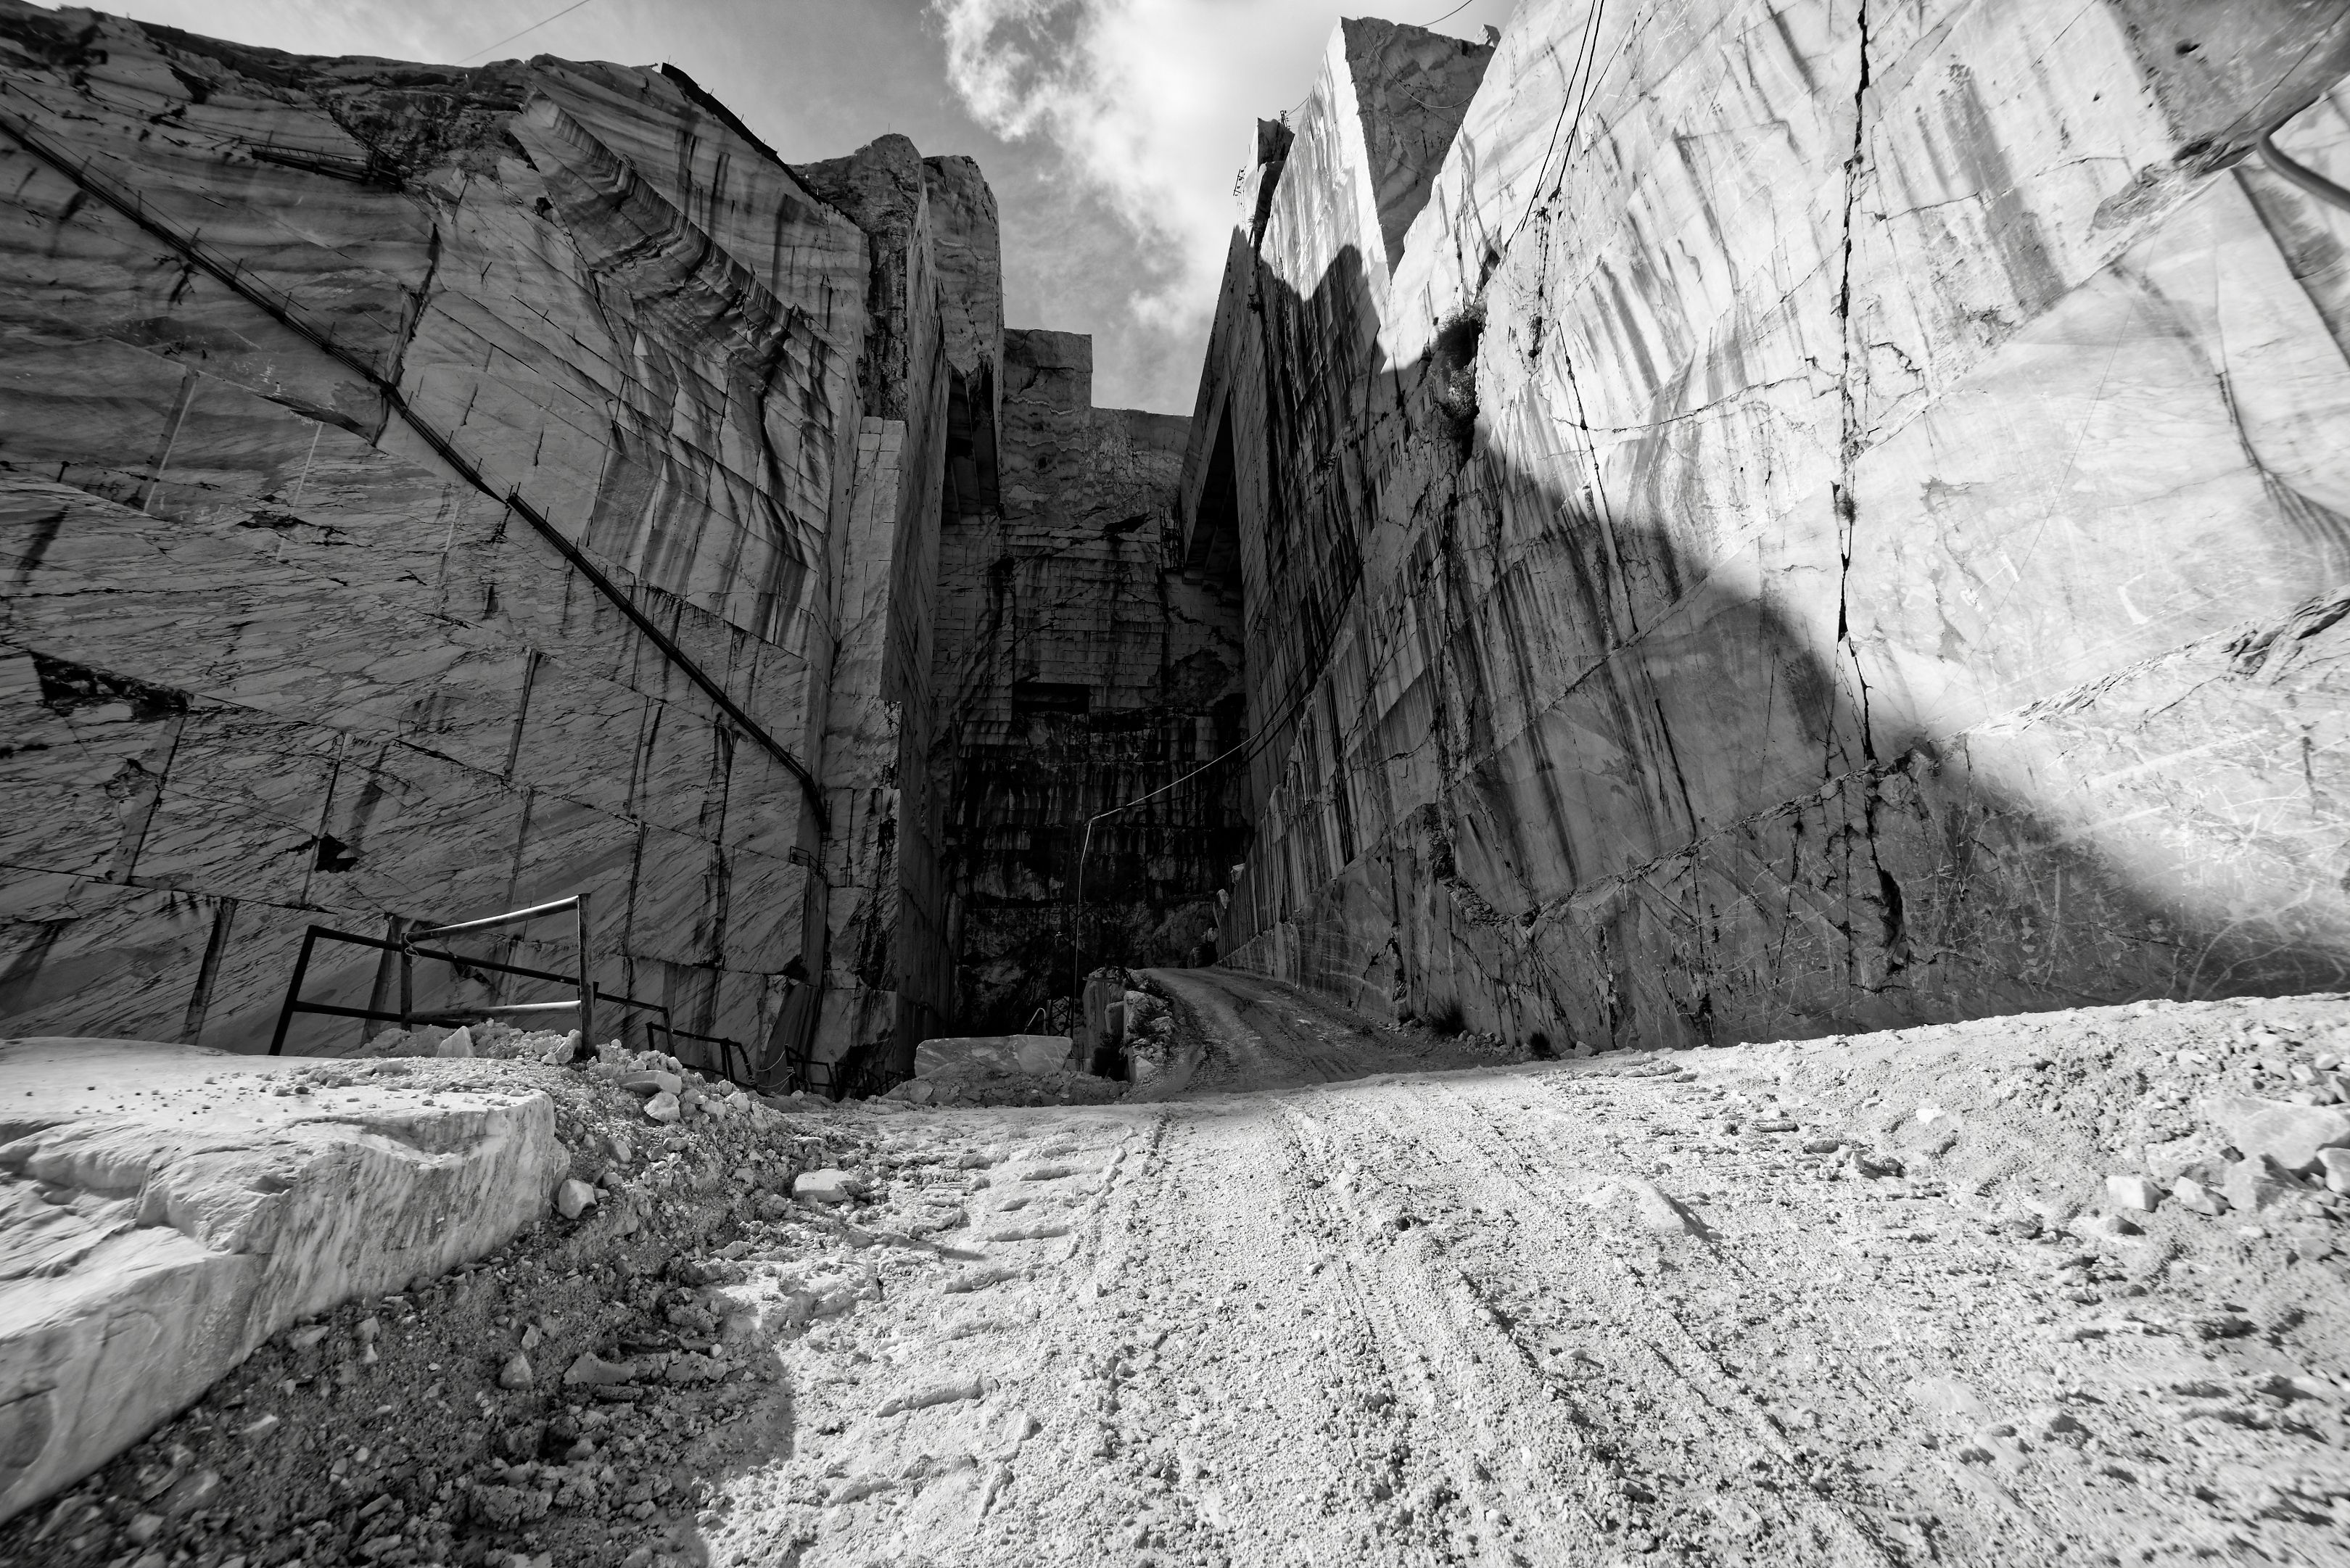 Italy Marble Quarry 4k Clicking On Images Photography Forum Image Digital Photography